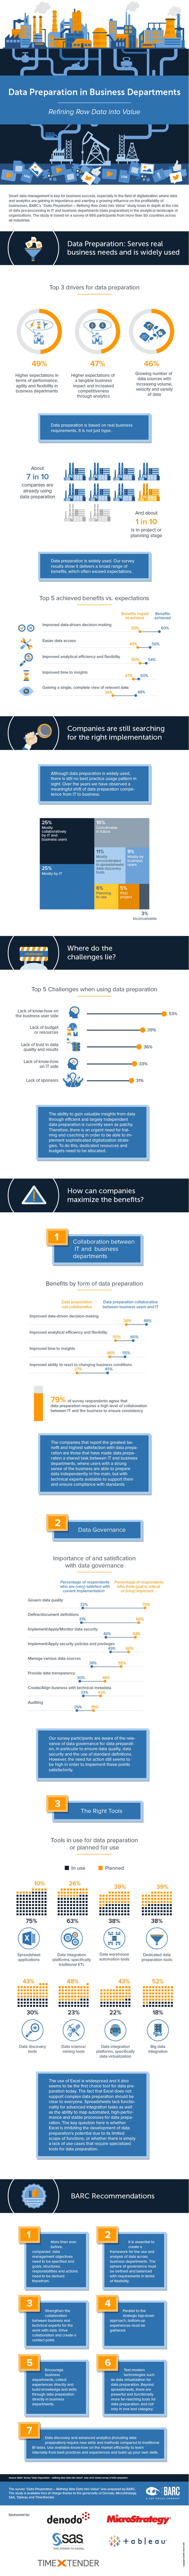 Data Preparation infographic